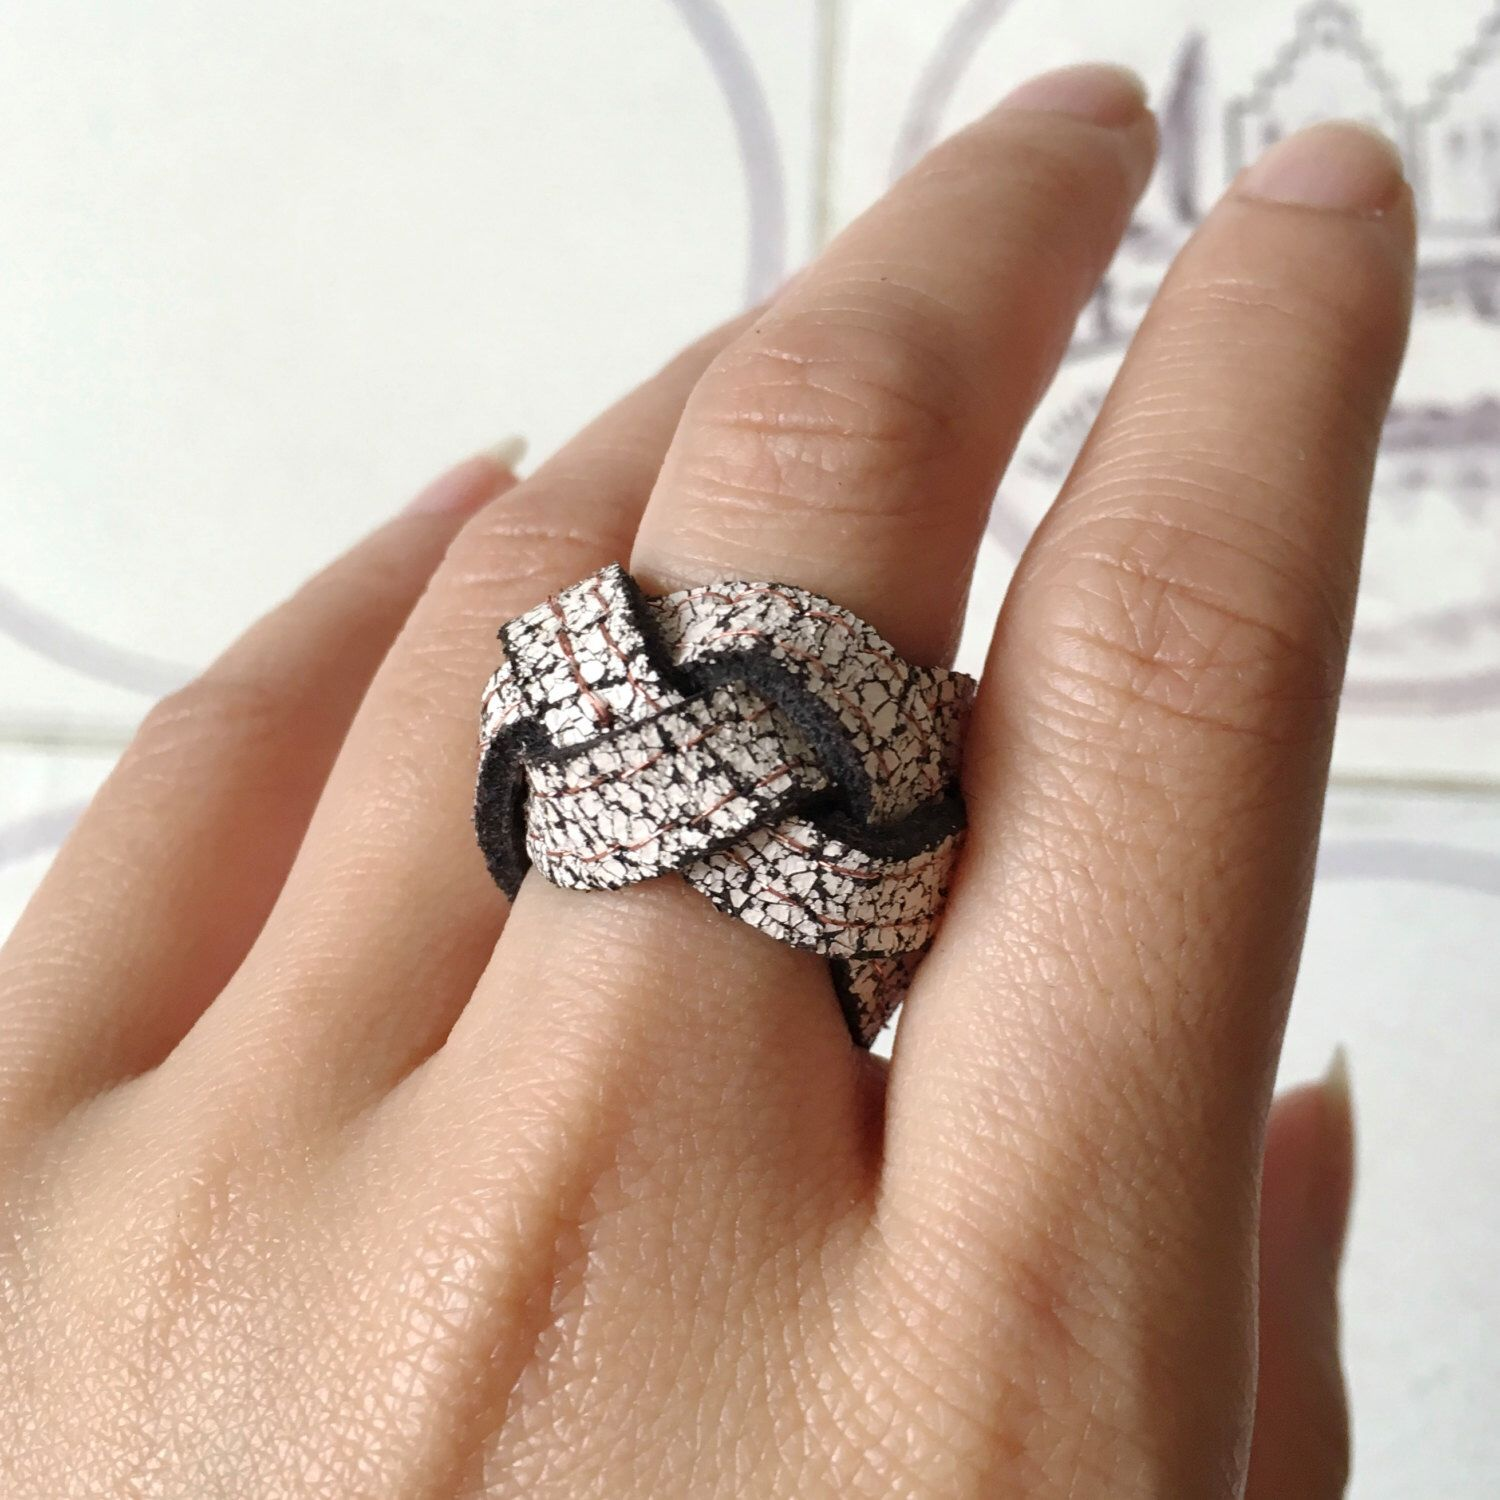 Pale Pink Crackle Leather Ring | Braided Ring | Wide Band Ring | Chunky Ring | White Statement Ring by ByLawLondon on Etsy https://www.etsy.com/uk/listing/469216721/pale-pink-crackle-leather-ring-braided